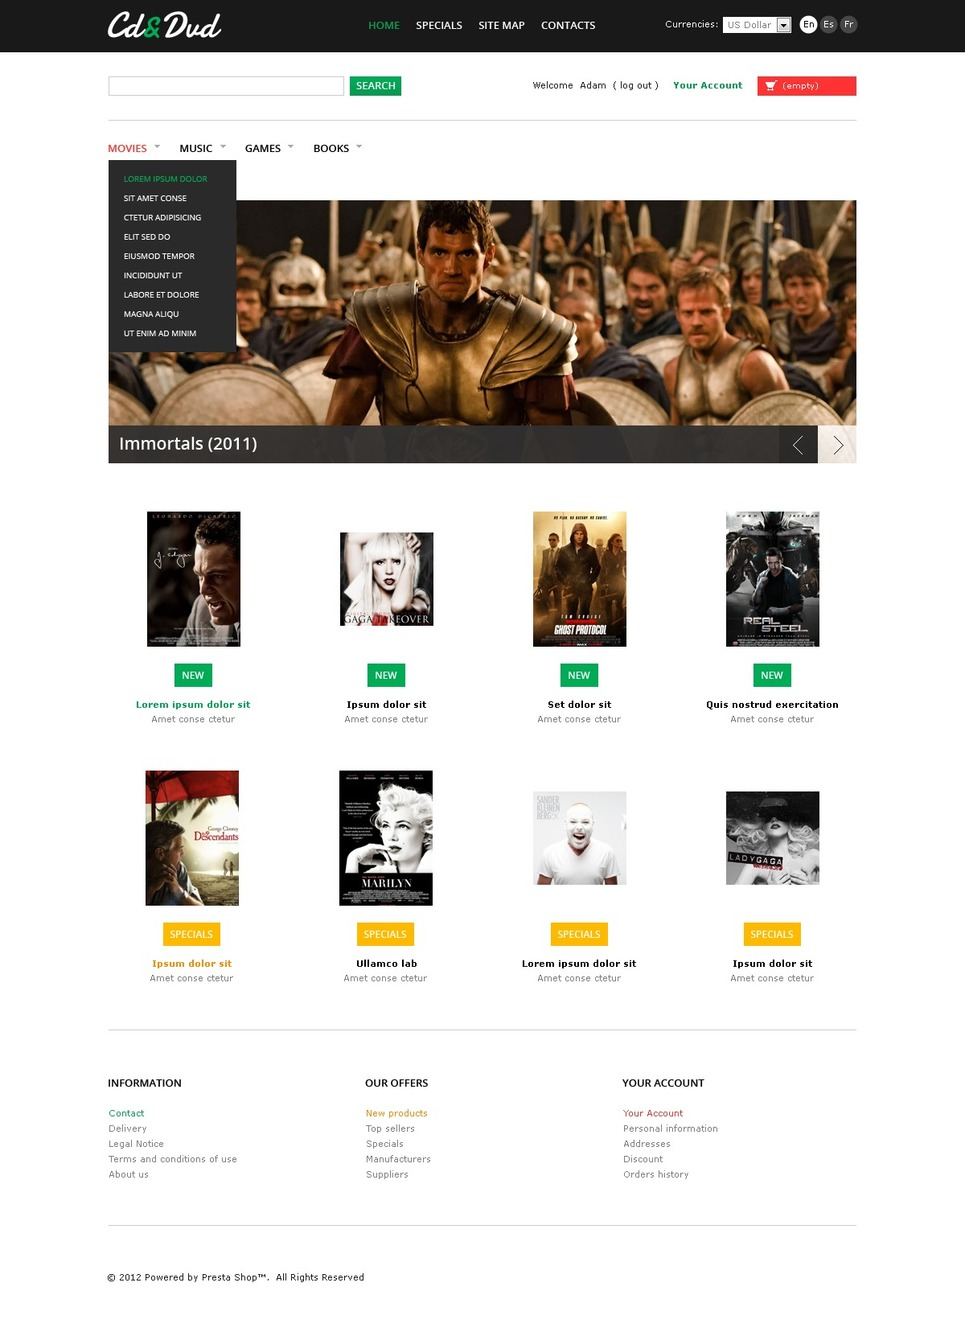 Selling CD & DVD PrestaShop Theme New Screenshots BIG